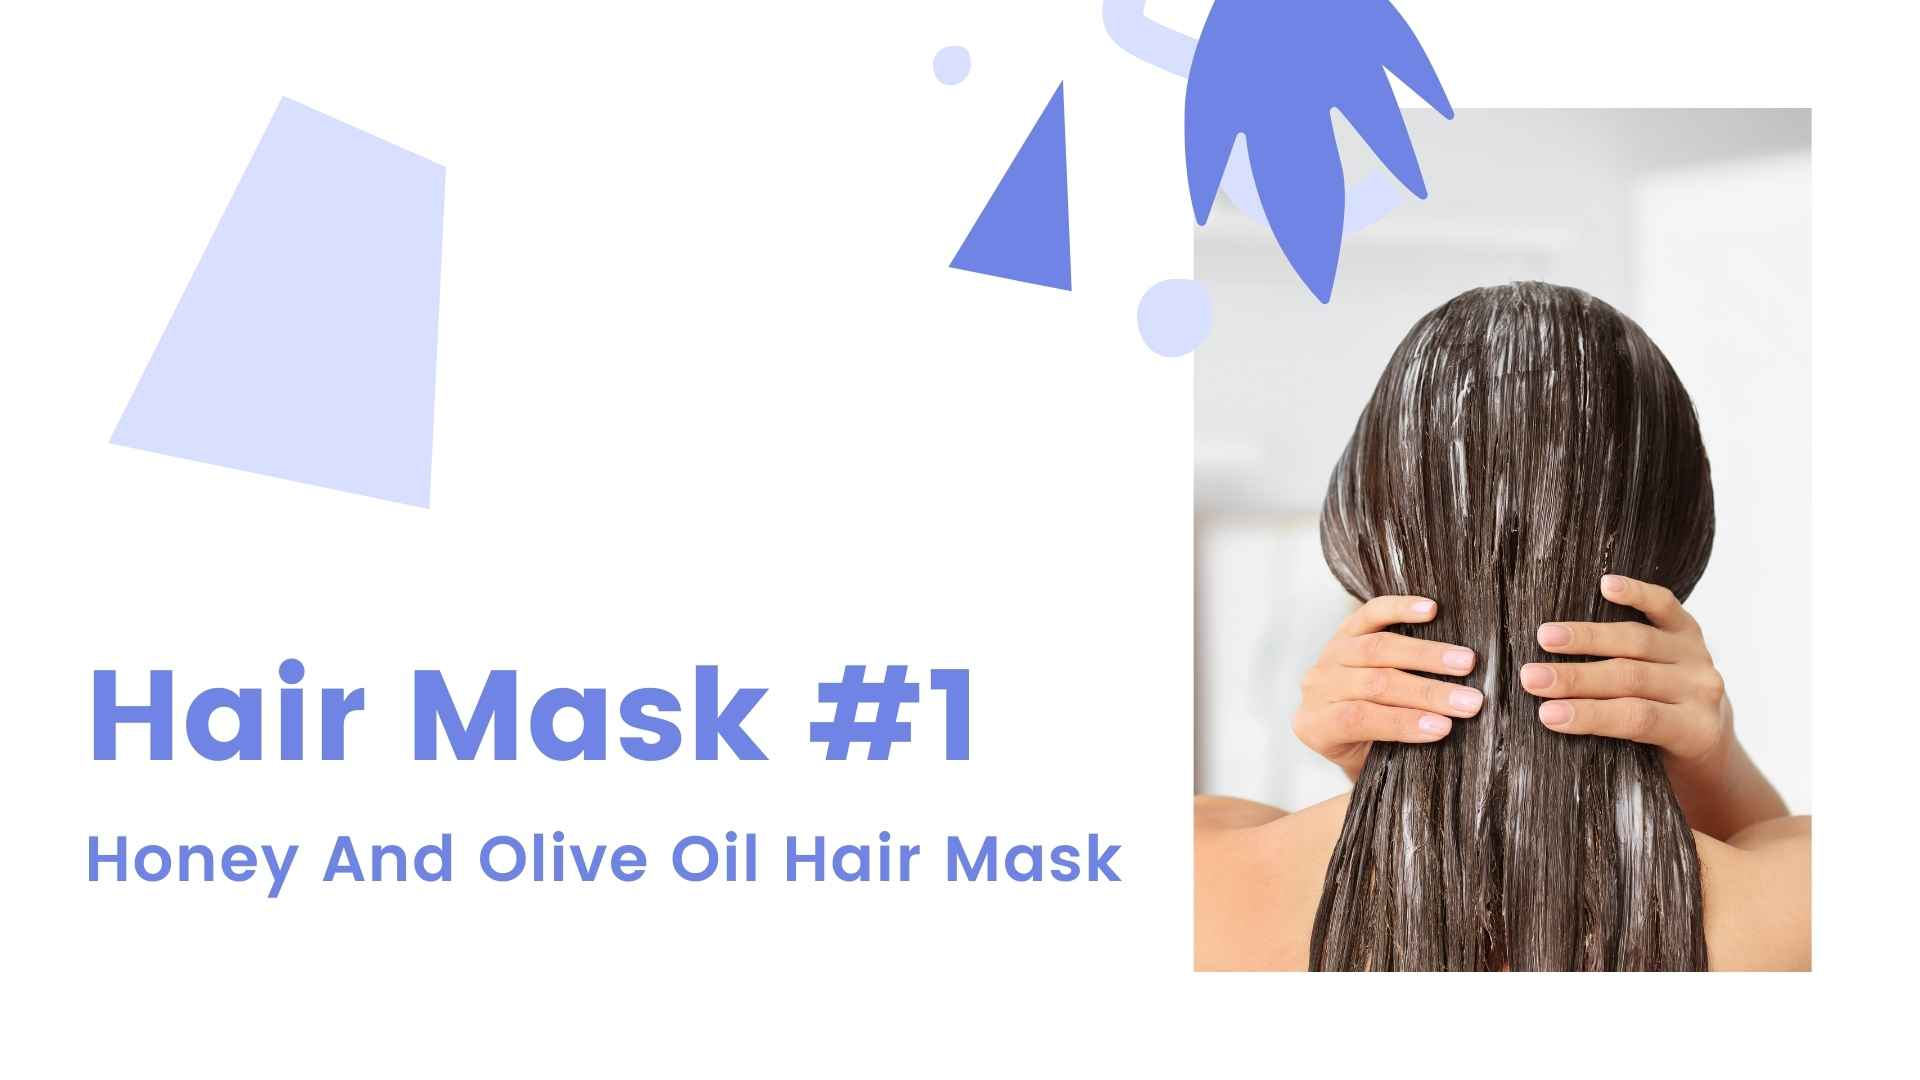 Hair Mask #1 Honey And Olive Oil Hair Mask